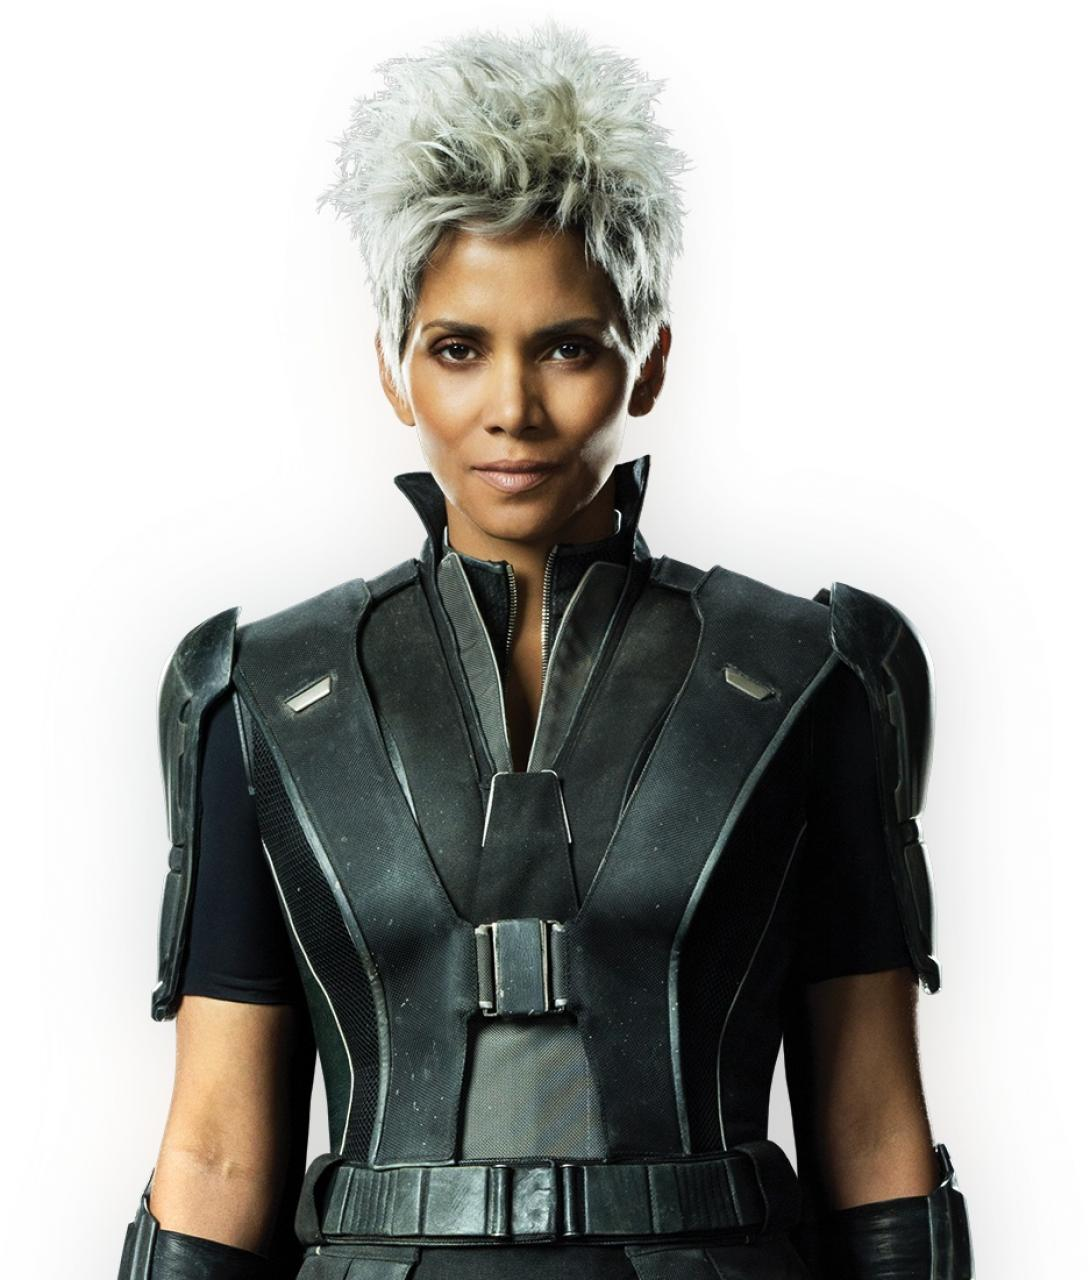 X-Men Days of Future Past character photo - Halle Berry as ...